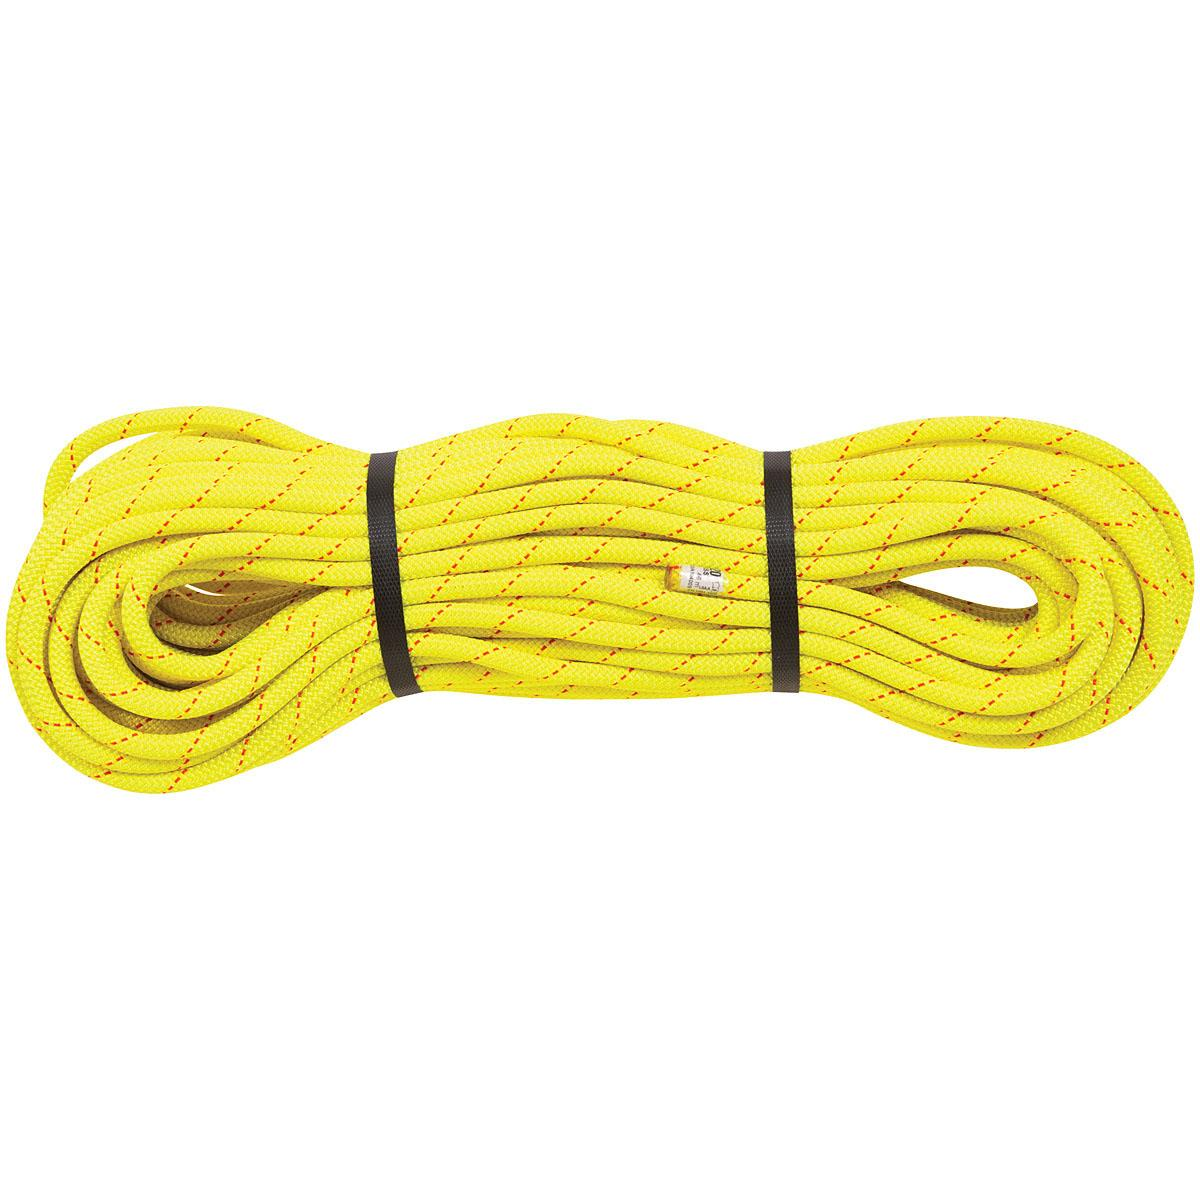 Edelweiss Canyon 10mm Everdry Rope